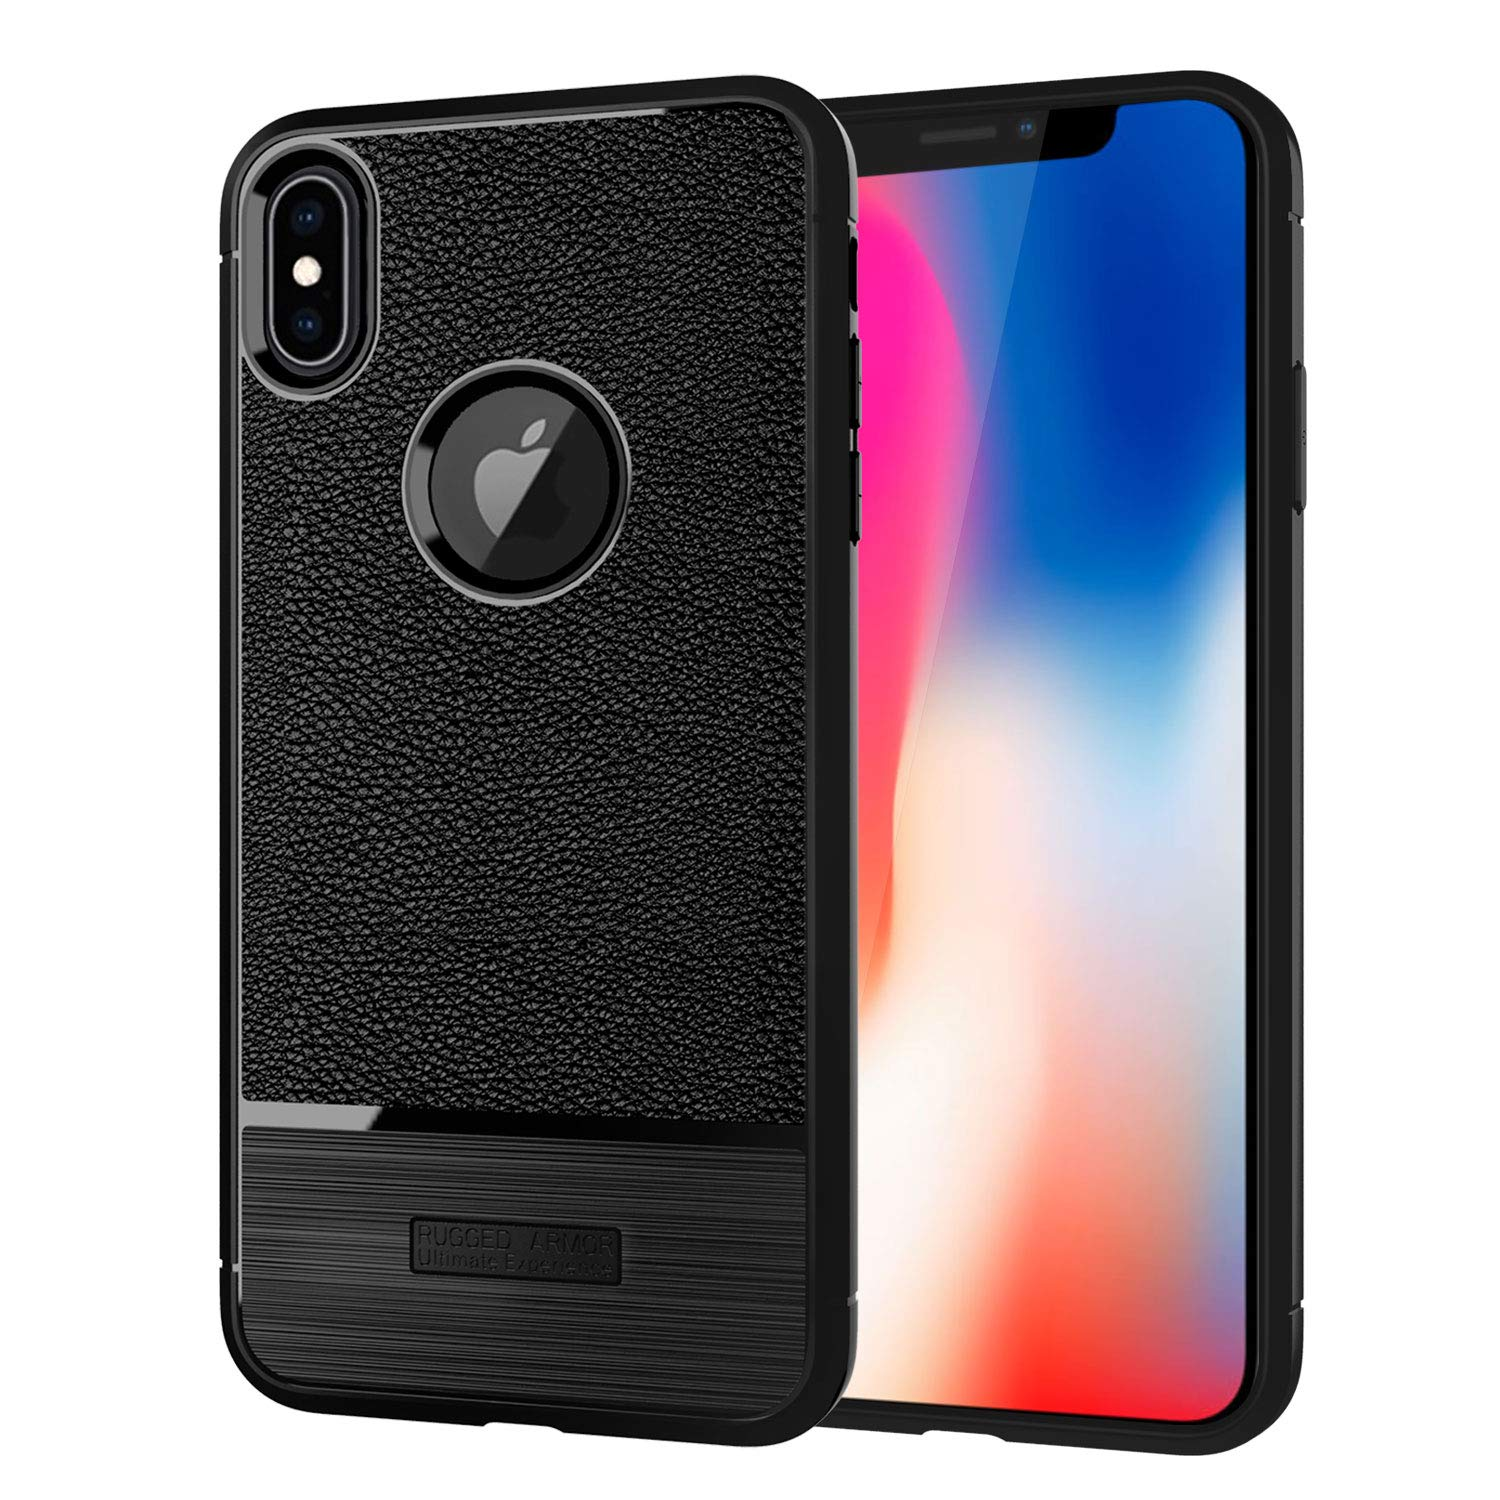 detailed look 3c797 71aa1 iPhone X Case, iPhone Xs Case, [Scratch Resistant] Actionpie TPU Bumper  Case with Built-in Invisible airbag Protection for iPhone X, iPhone Xs 5.8  ...